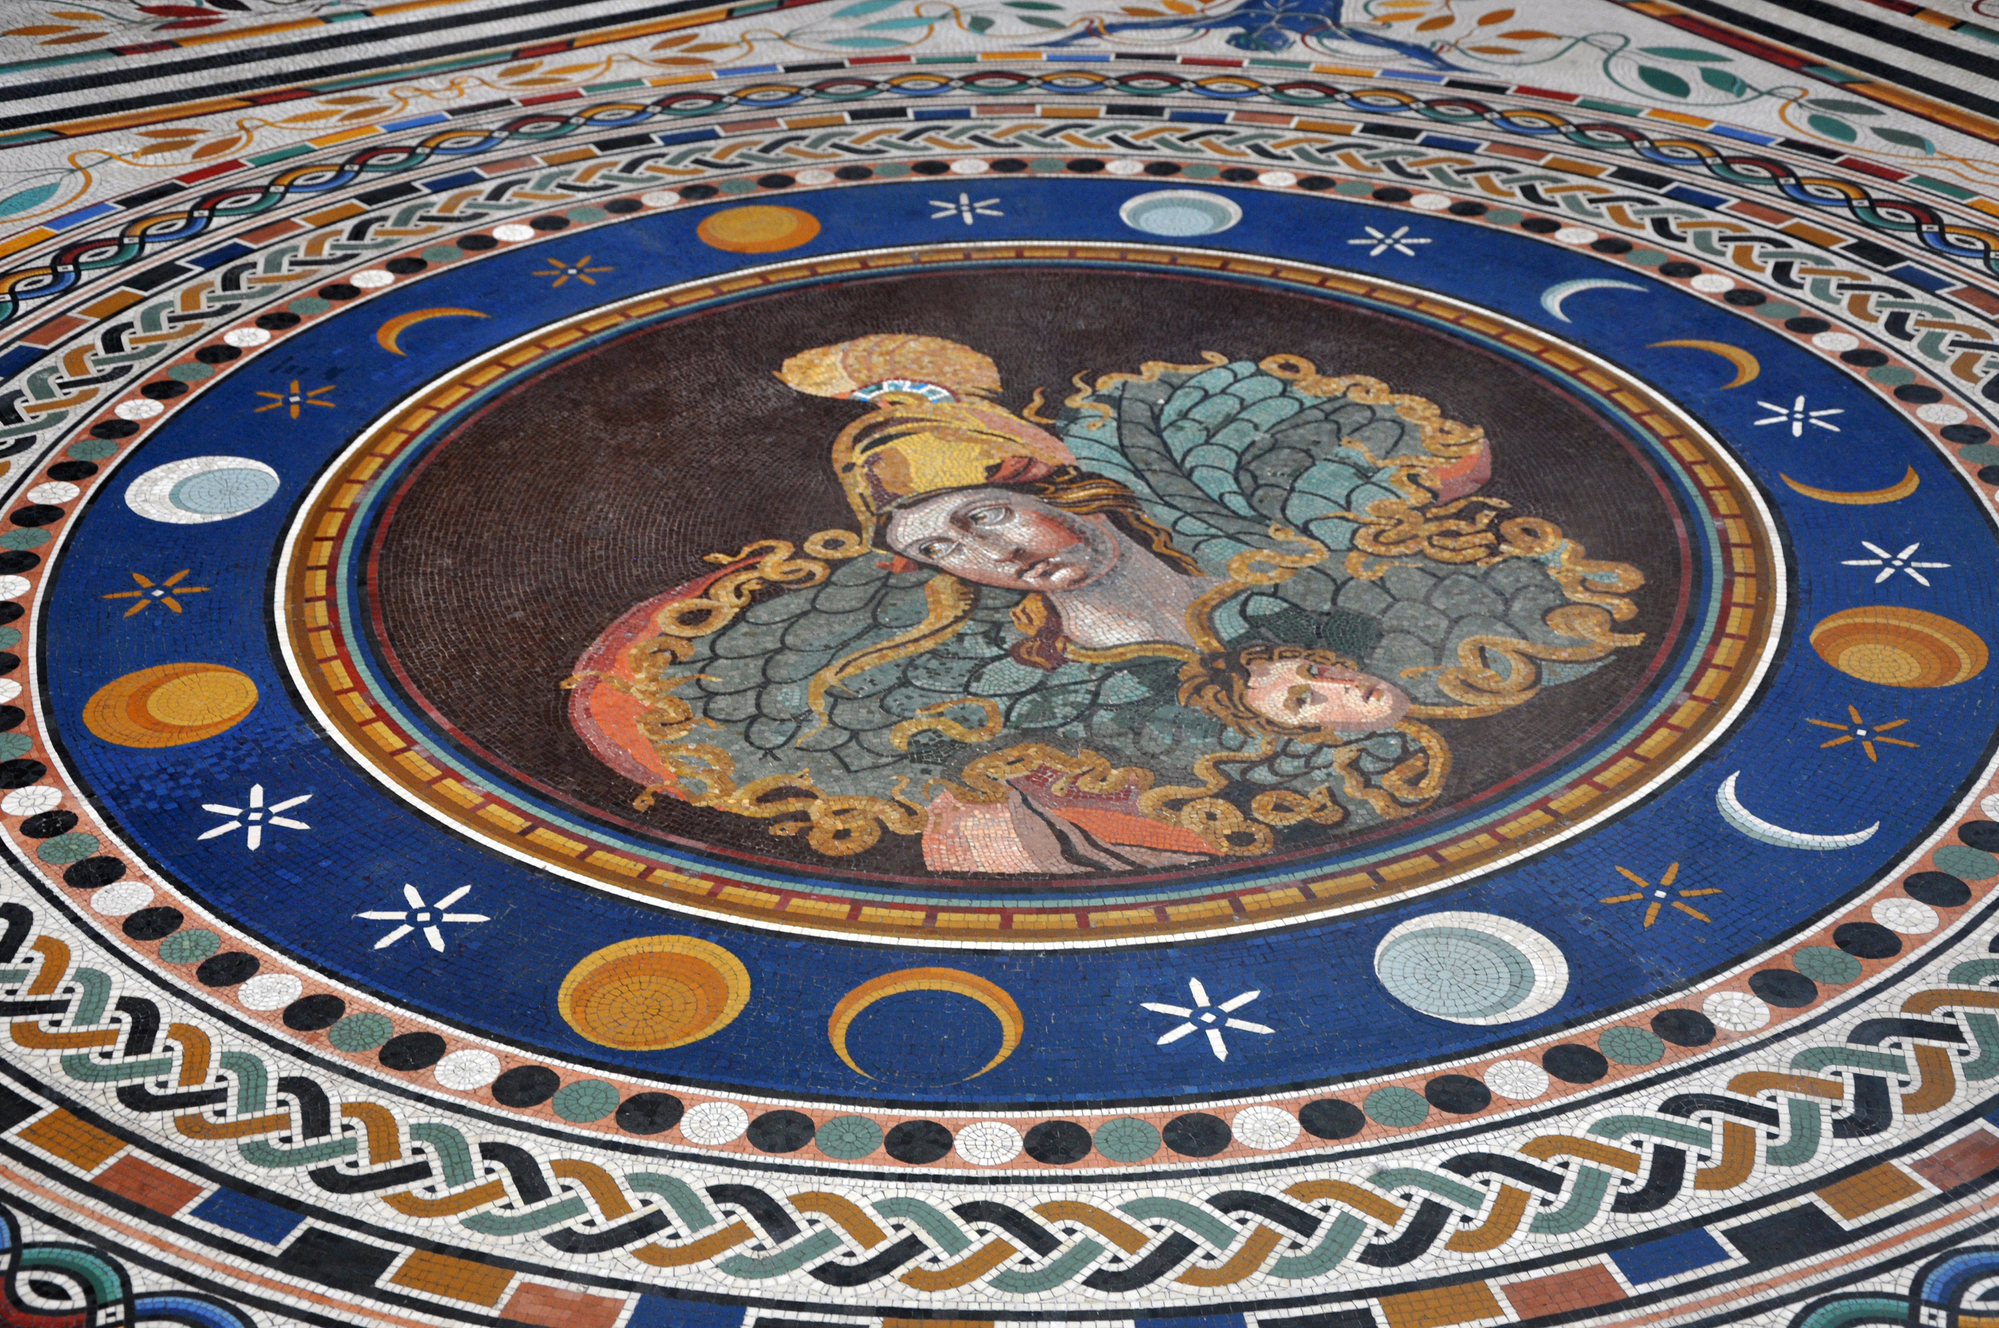 Mosaic tiled floor in the Vatican museums